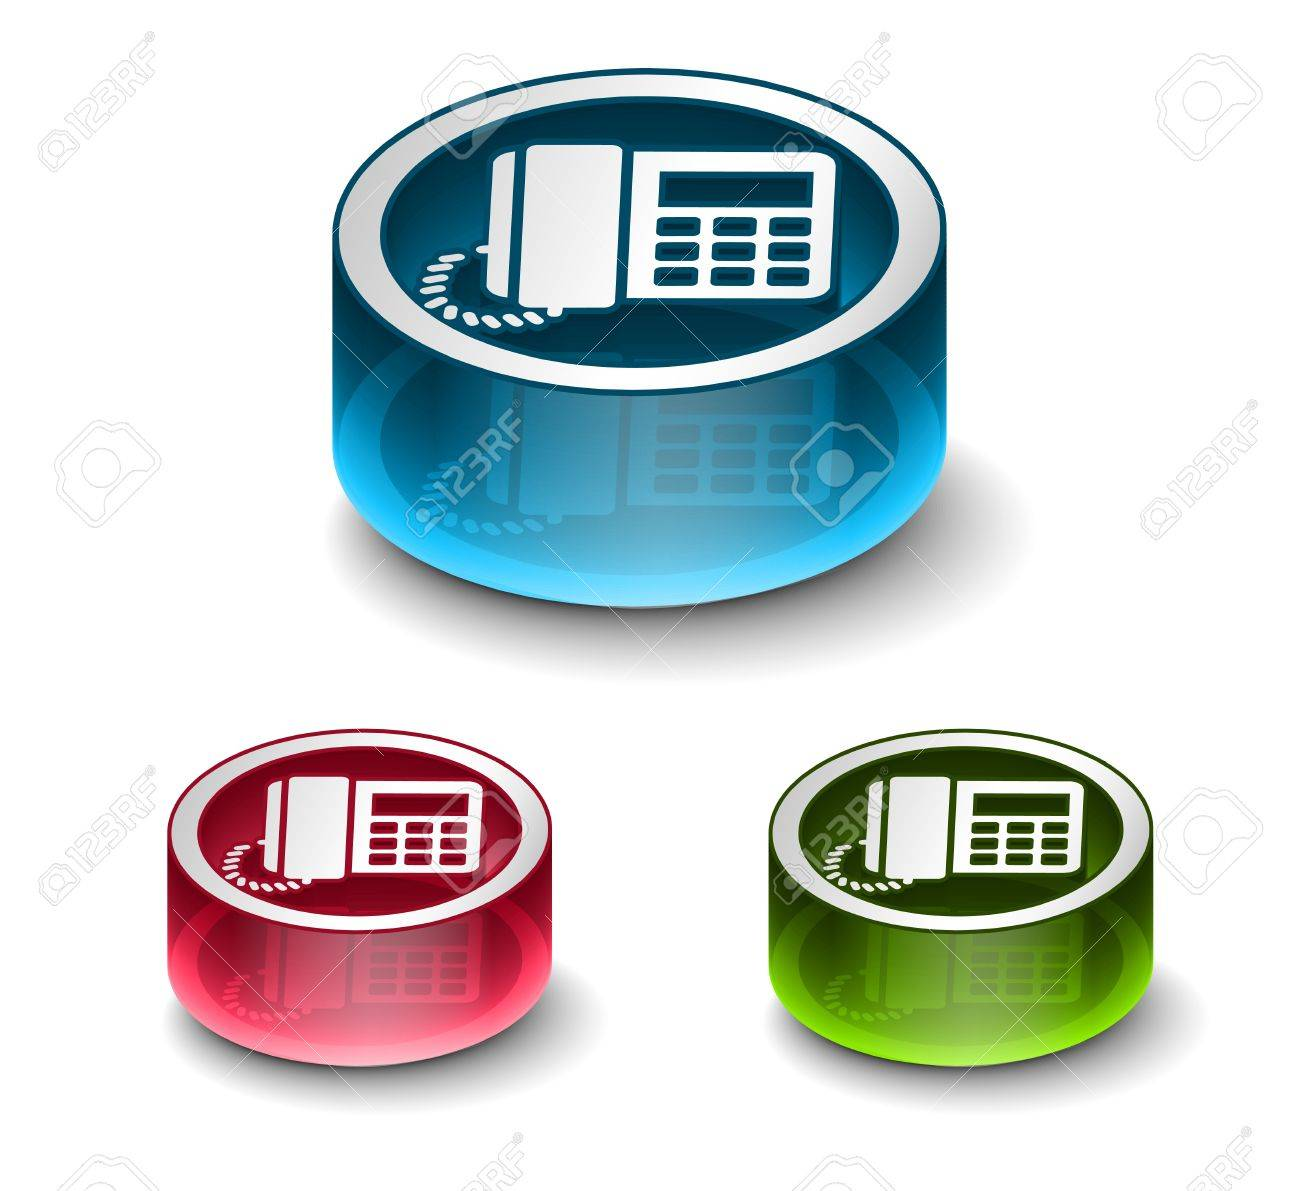 3d glossy phone icon, includes 3 color versions. Stock Vector - 9525268